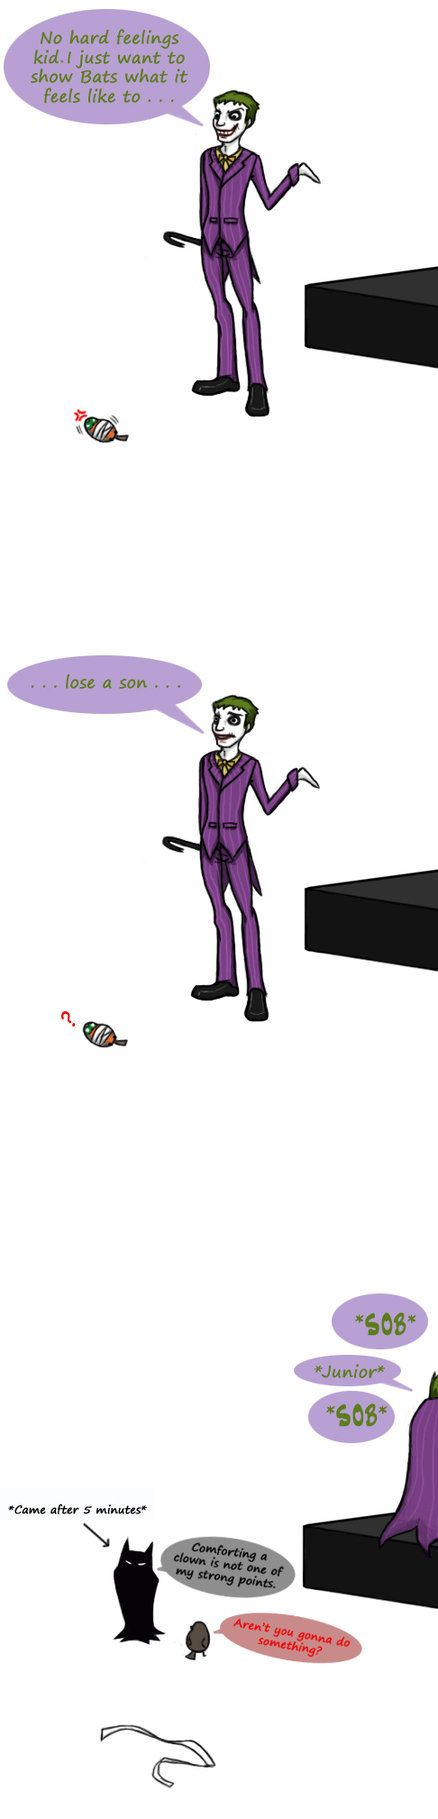 Bat Family (c) to DC comics. Drawn after seeing a short clip of UTRH on youtube, when the Joker finished betting Jason up. There's reference to Batman:The Killing Joke where the Joker lost his wife...